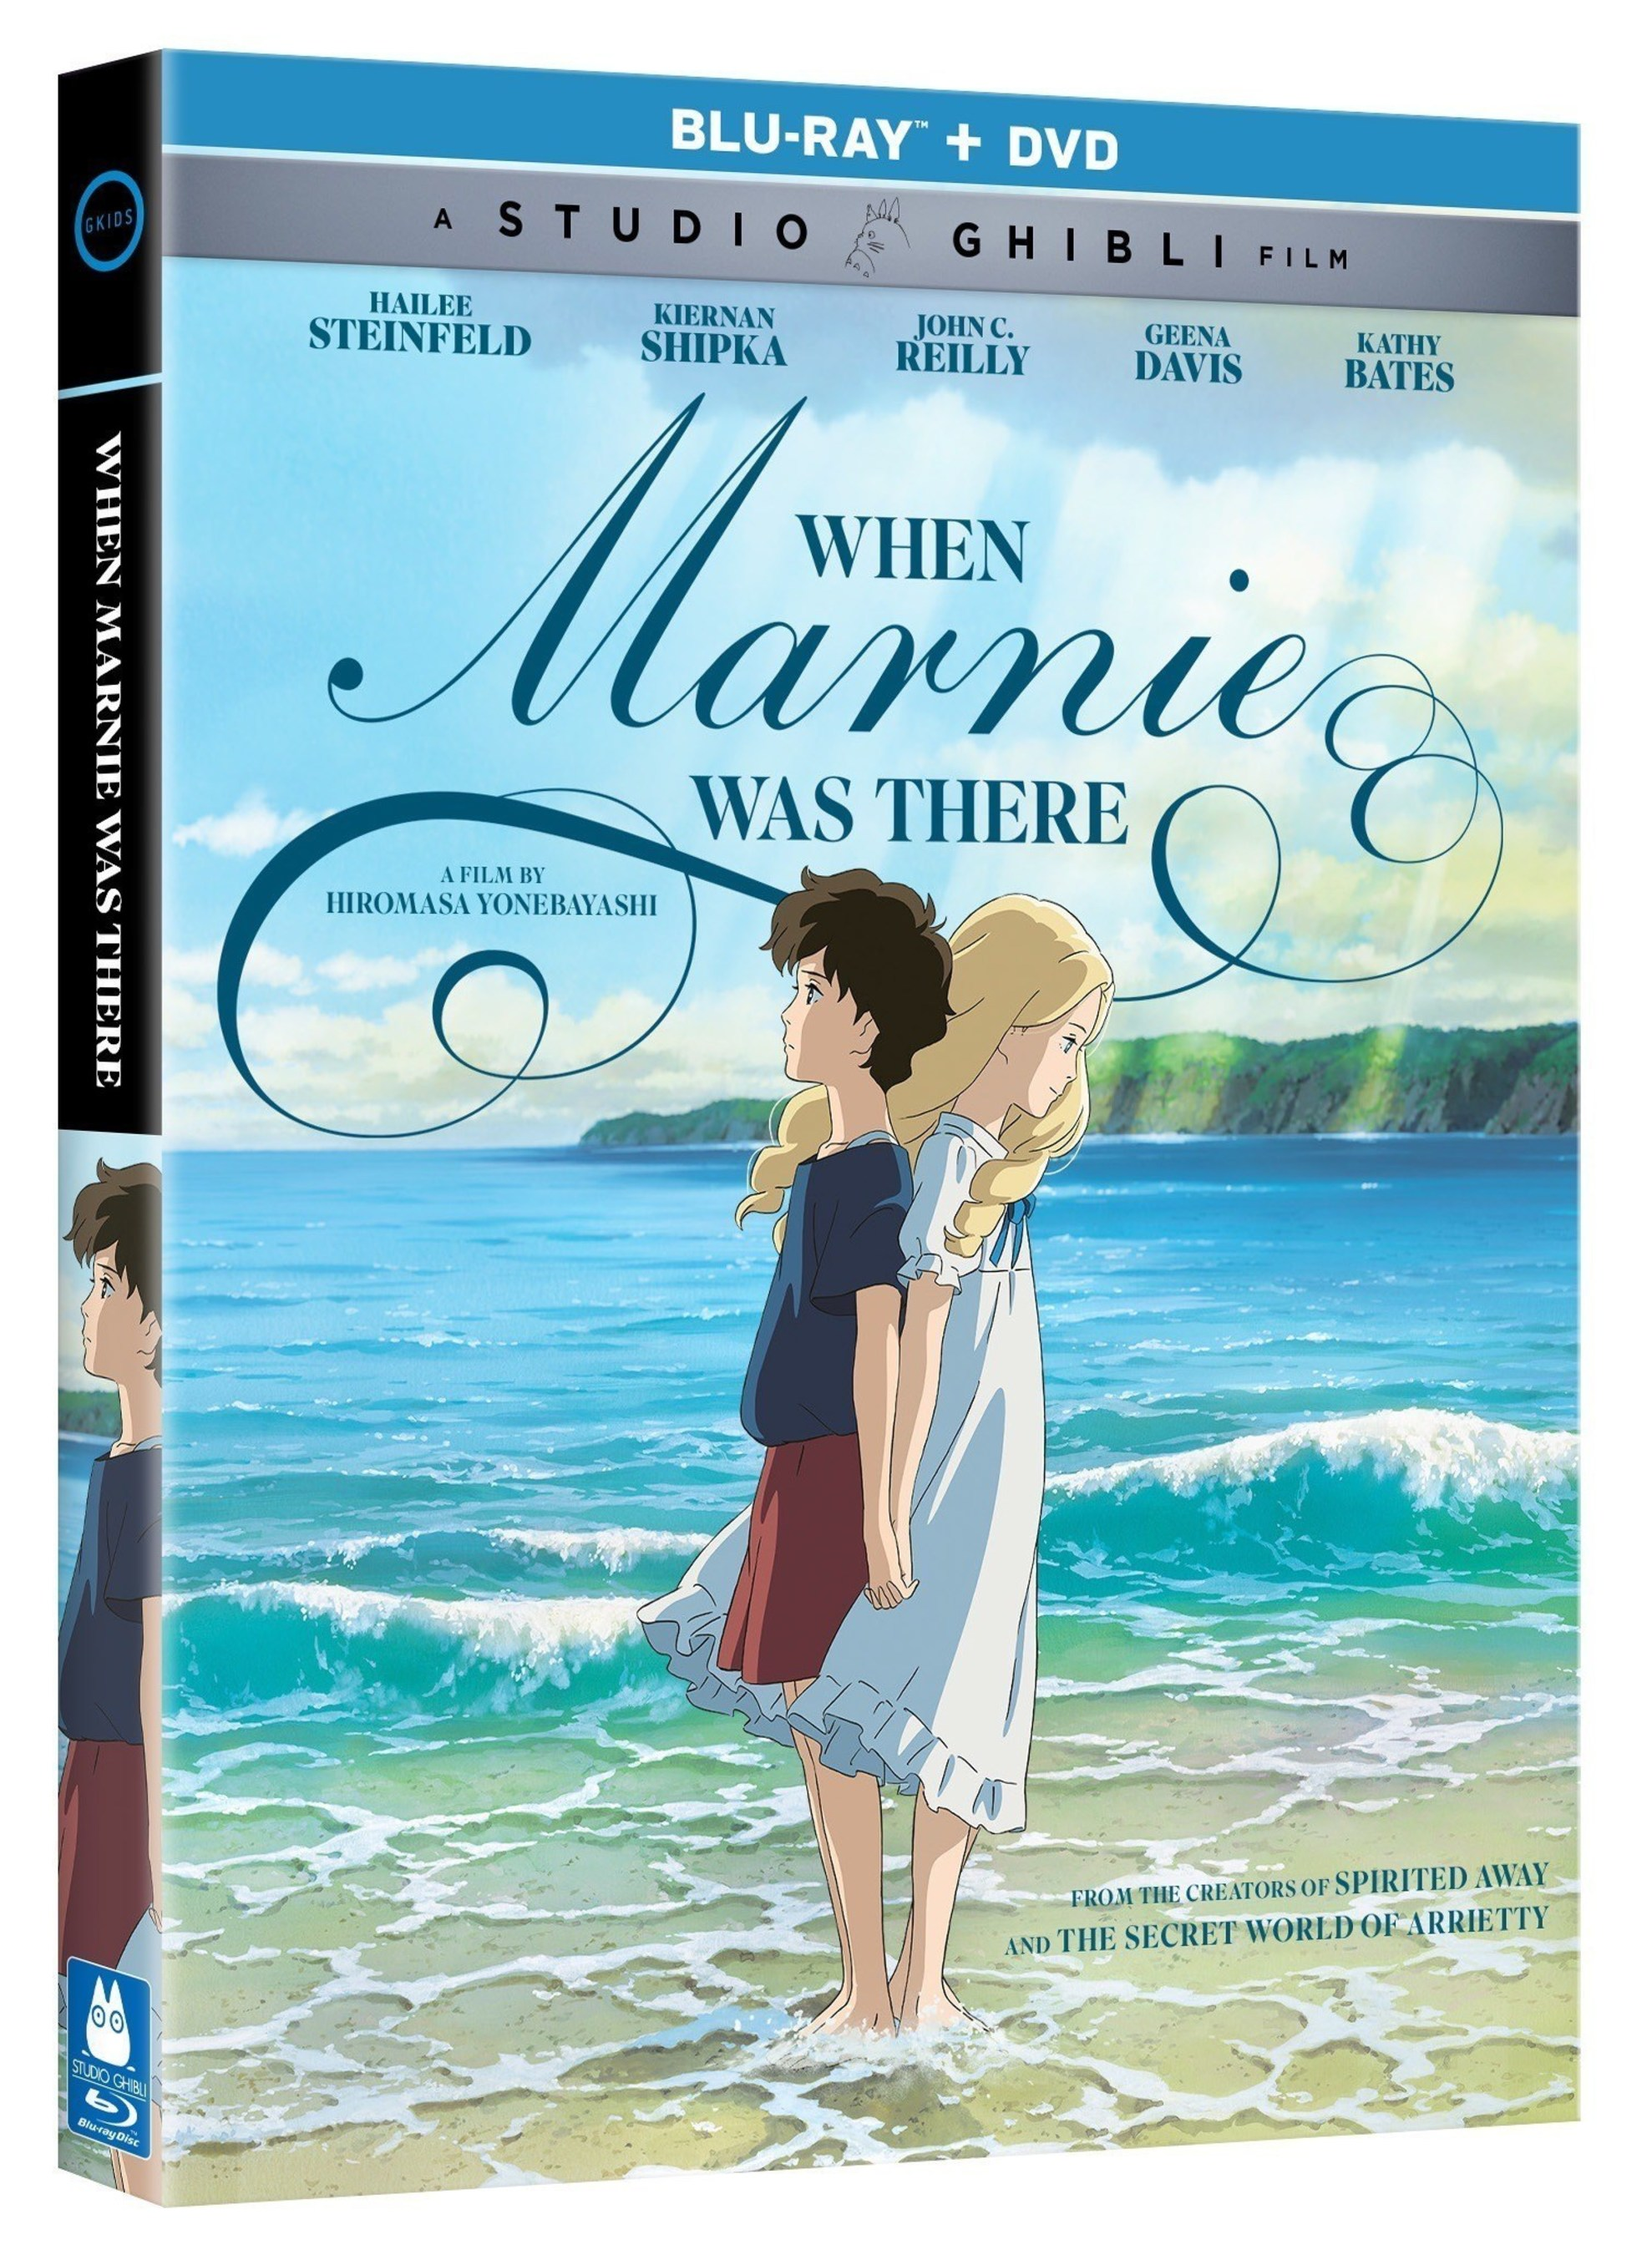 From Universal Pictures Home Entertainment: When Marnie Was There